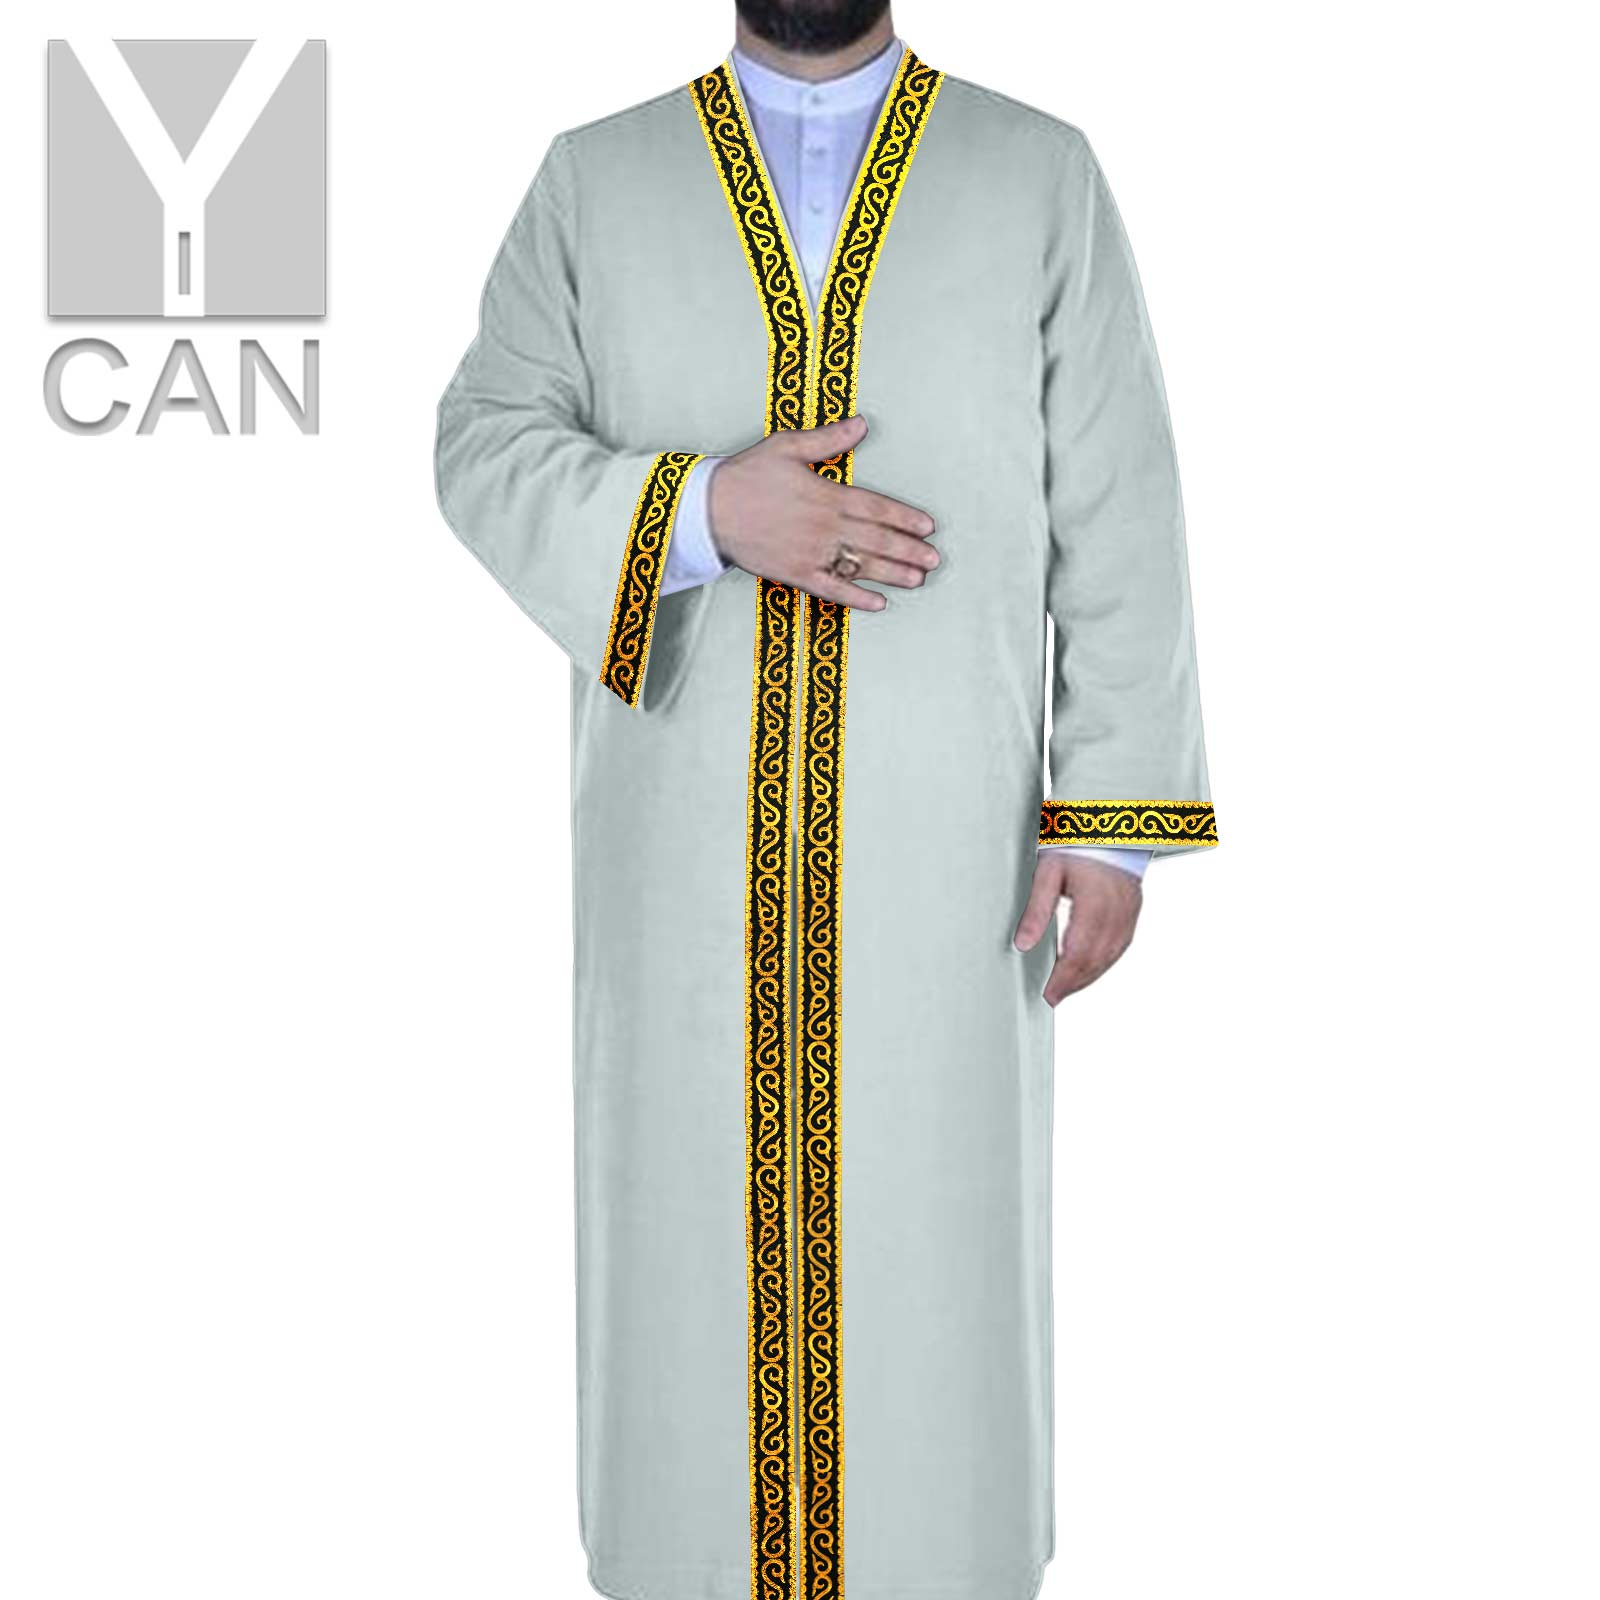 Y-CAN Muslim Fashion Men Islamic Abaya Dubai Robes Kaftan Lace Long Sleeve Modal Texture Robe Man Jubba Thobe Y201027